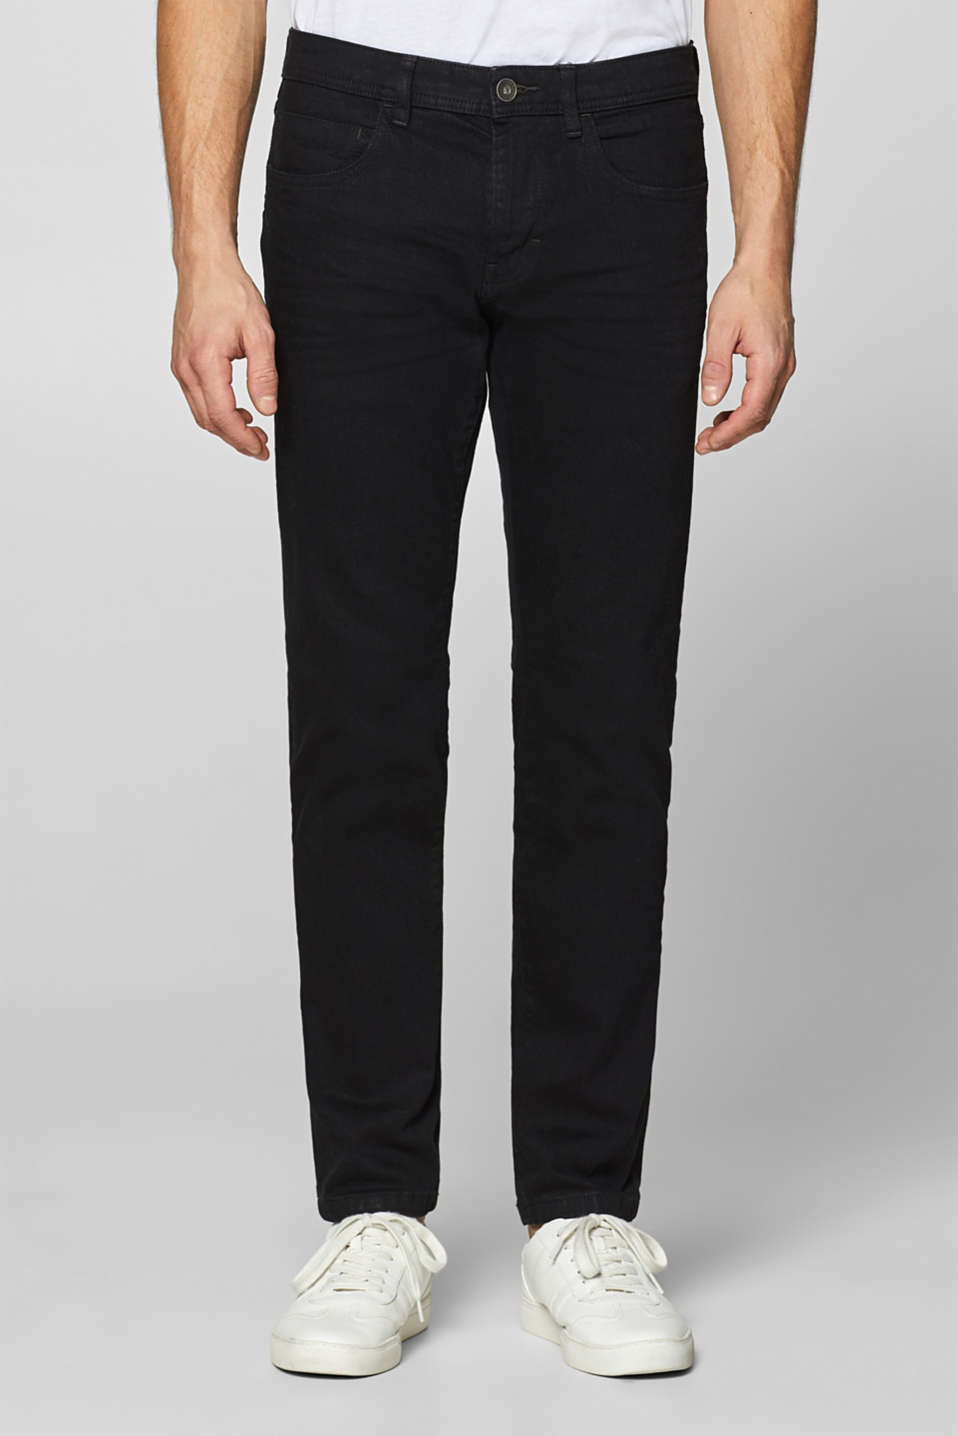 Esprit - Stretch jeans with a black dye effect